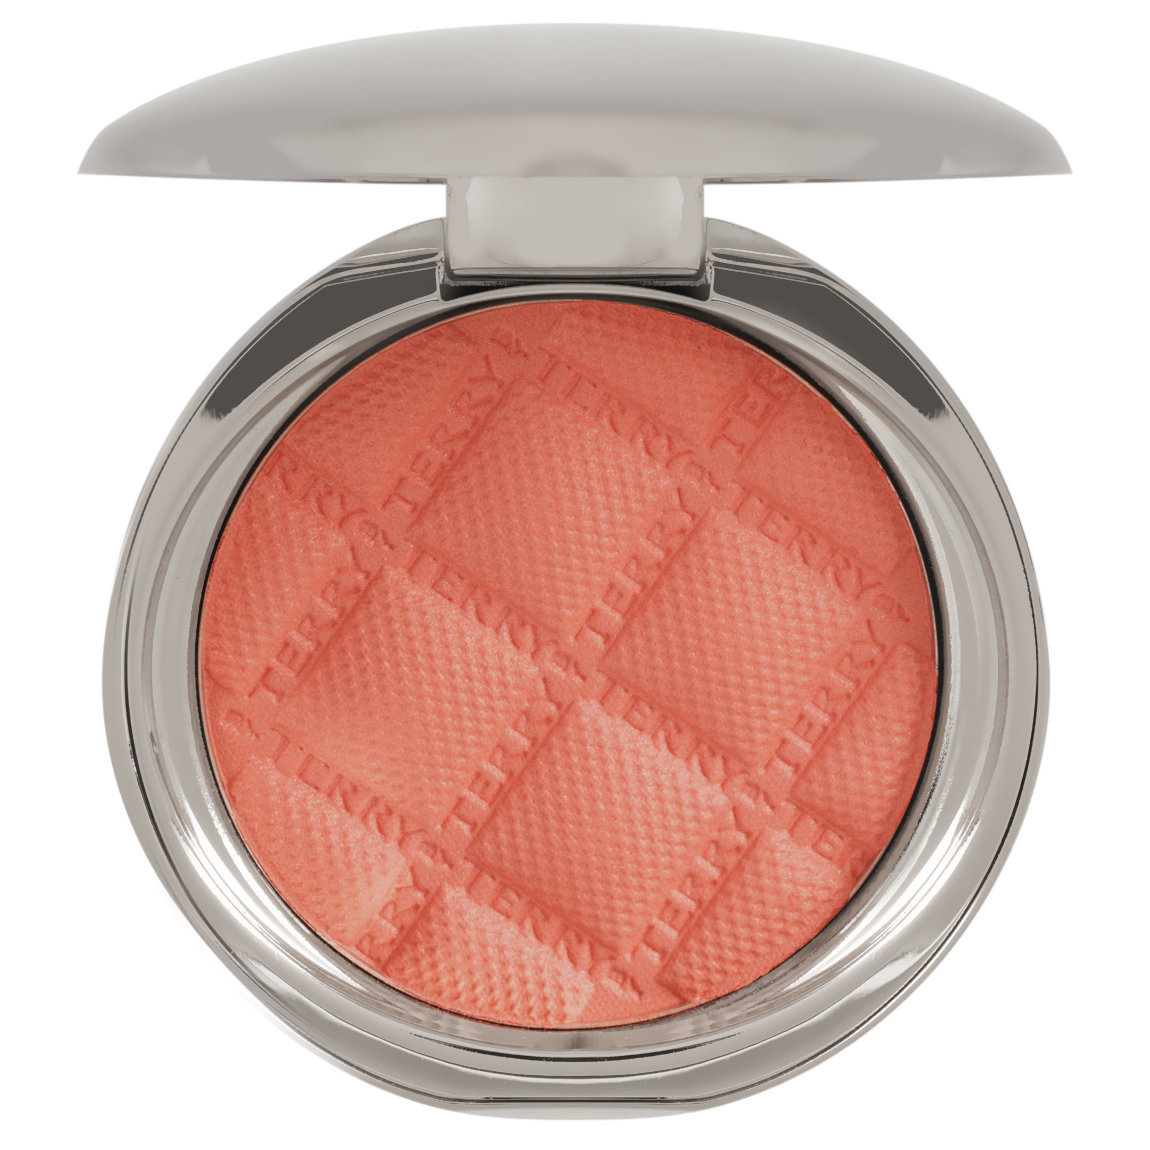 BY TERRY Terrybly Densiliss Blush 1 Platonic Blonde product smear.